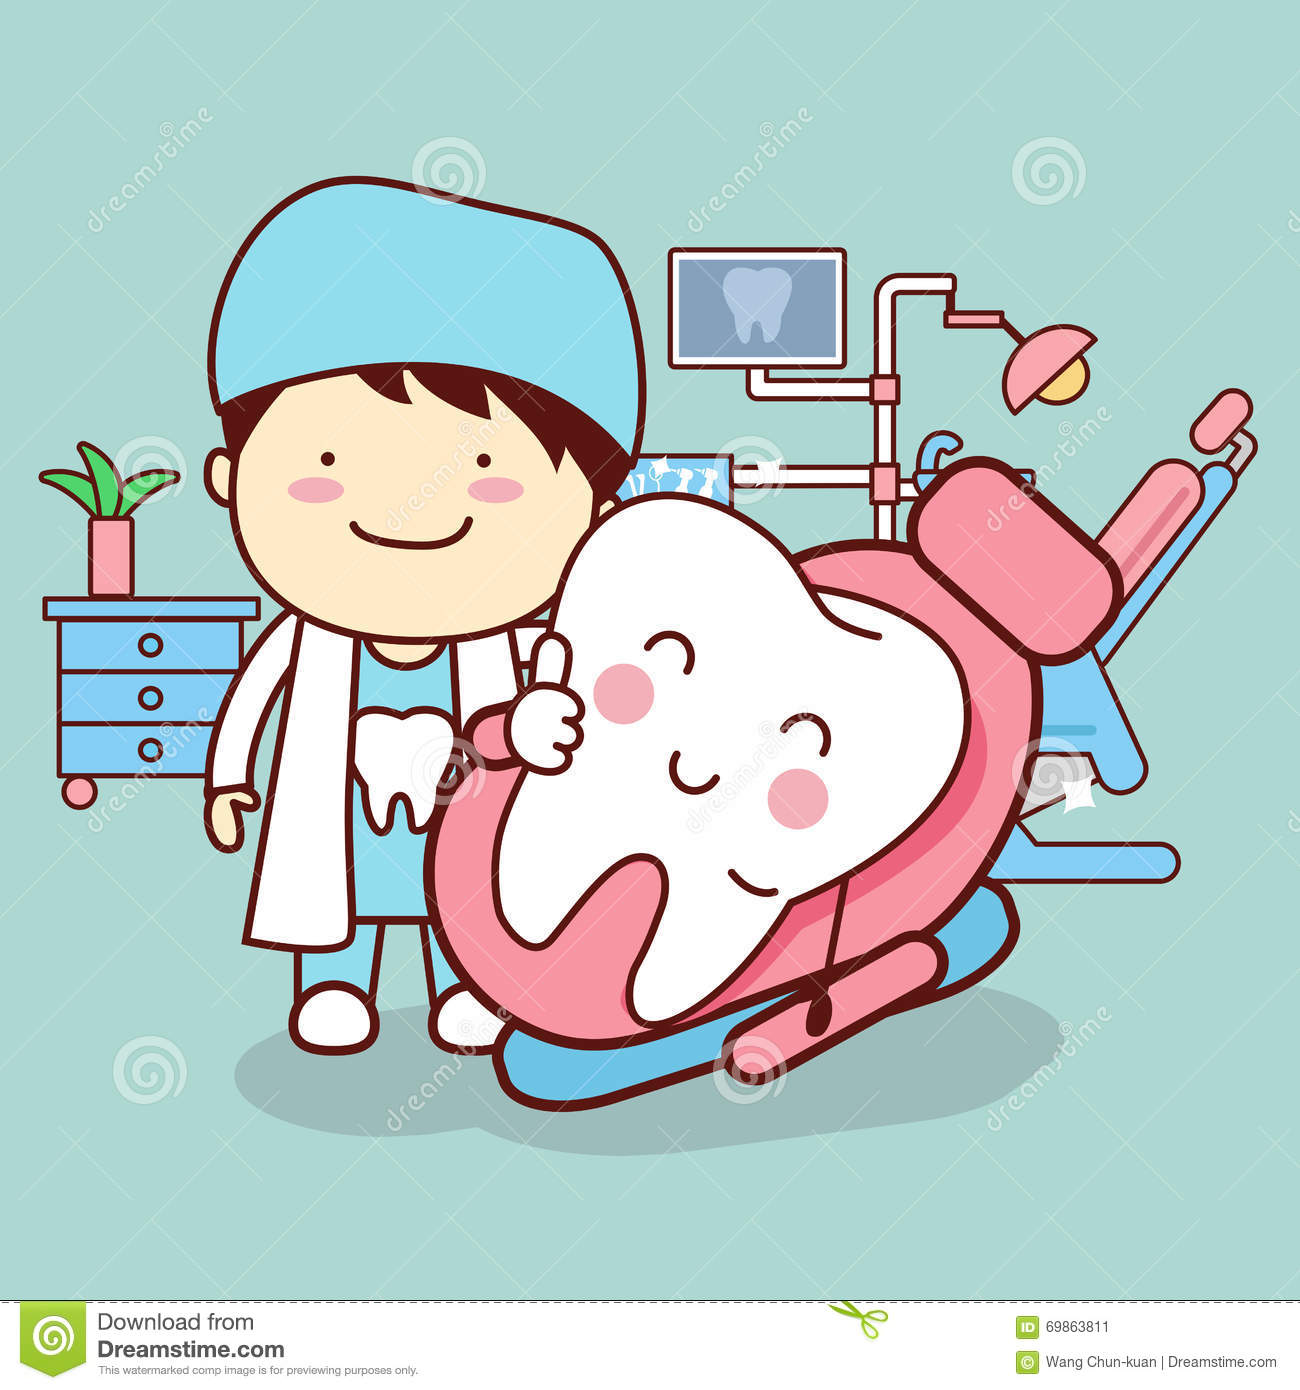 cartoon-dentist-tooth-doctor-sit-chair-thumb-up-great-dental-care-concept-69863811.jpg